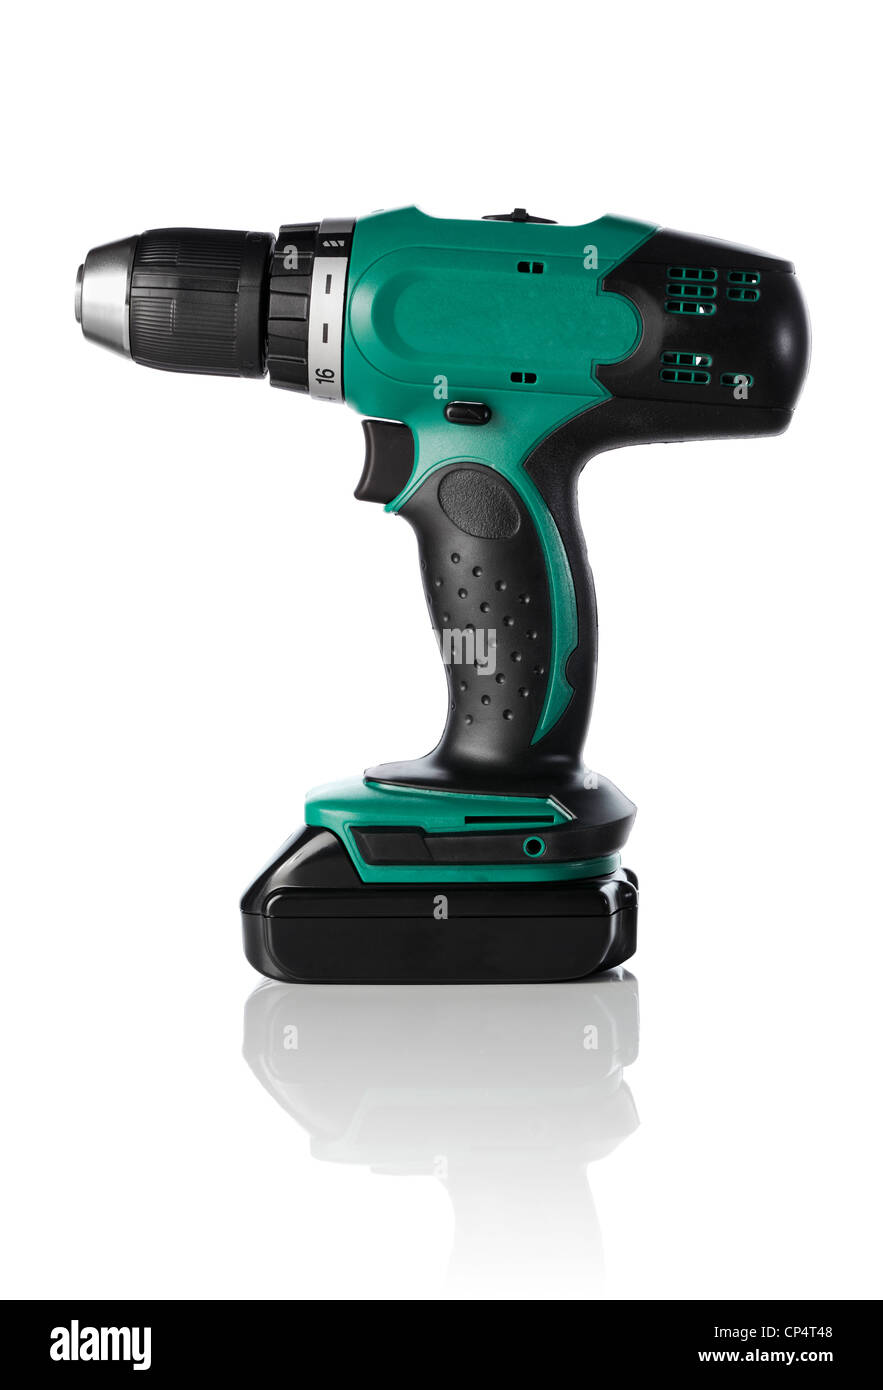 Professional grade battery-powered cordless electric drill. - Stock Image